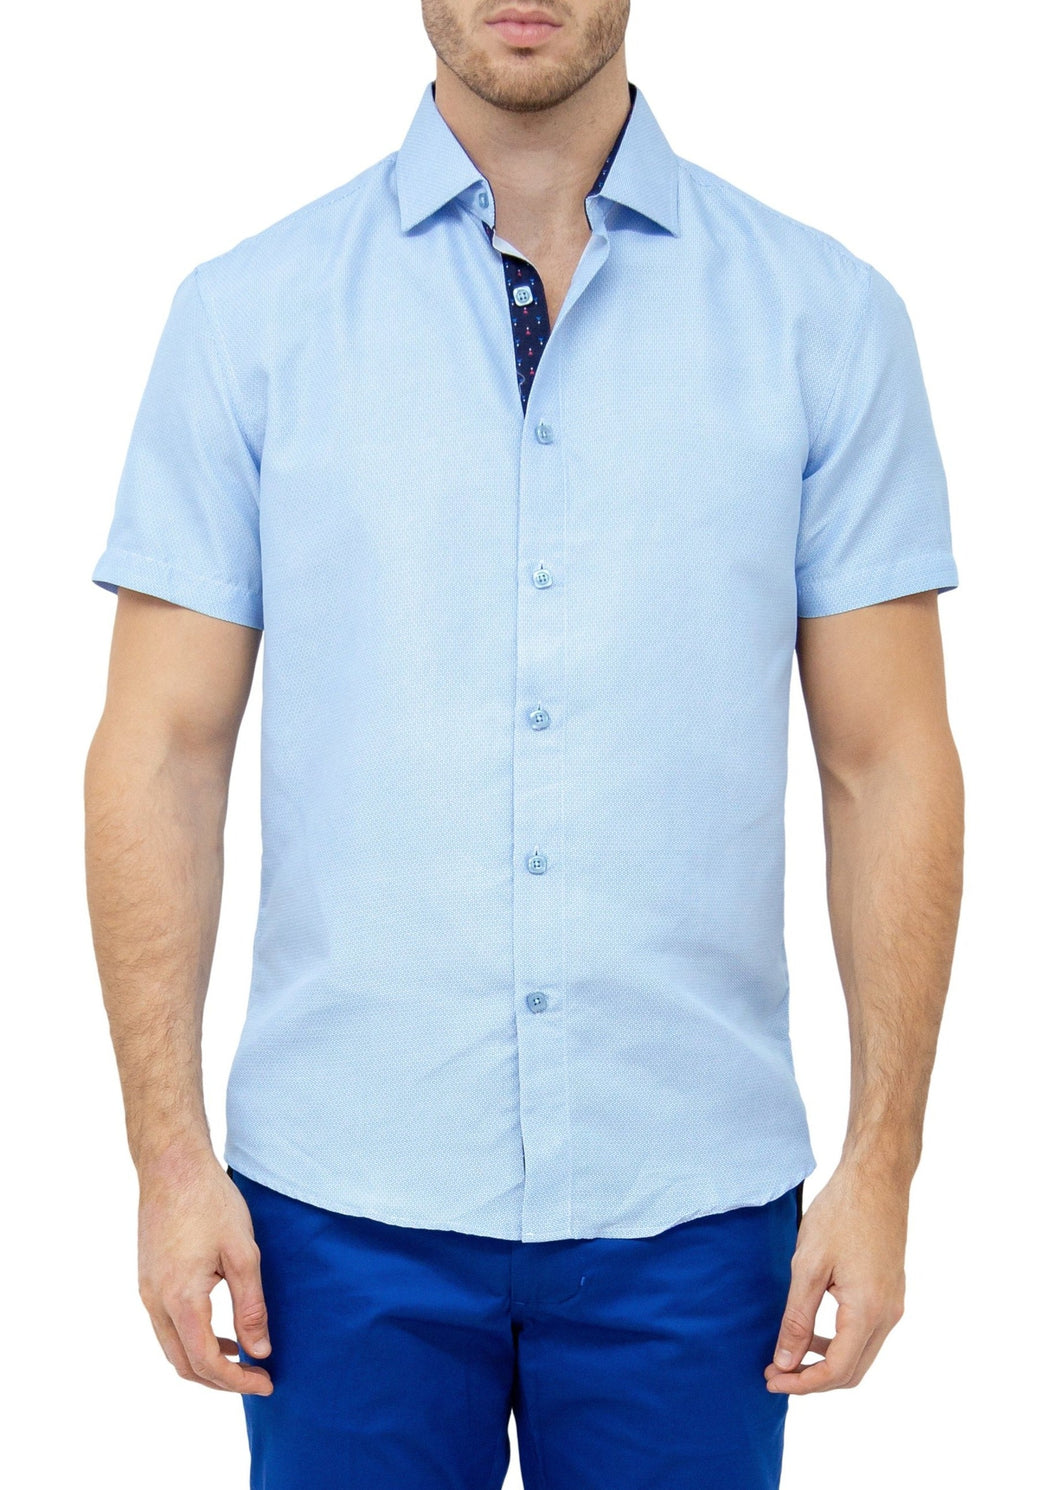 bc-182034-light-blue-button-up-short-sleeve-dress-shirt